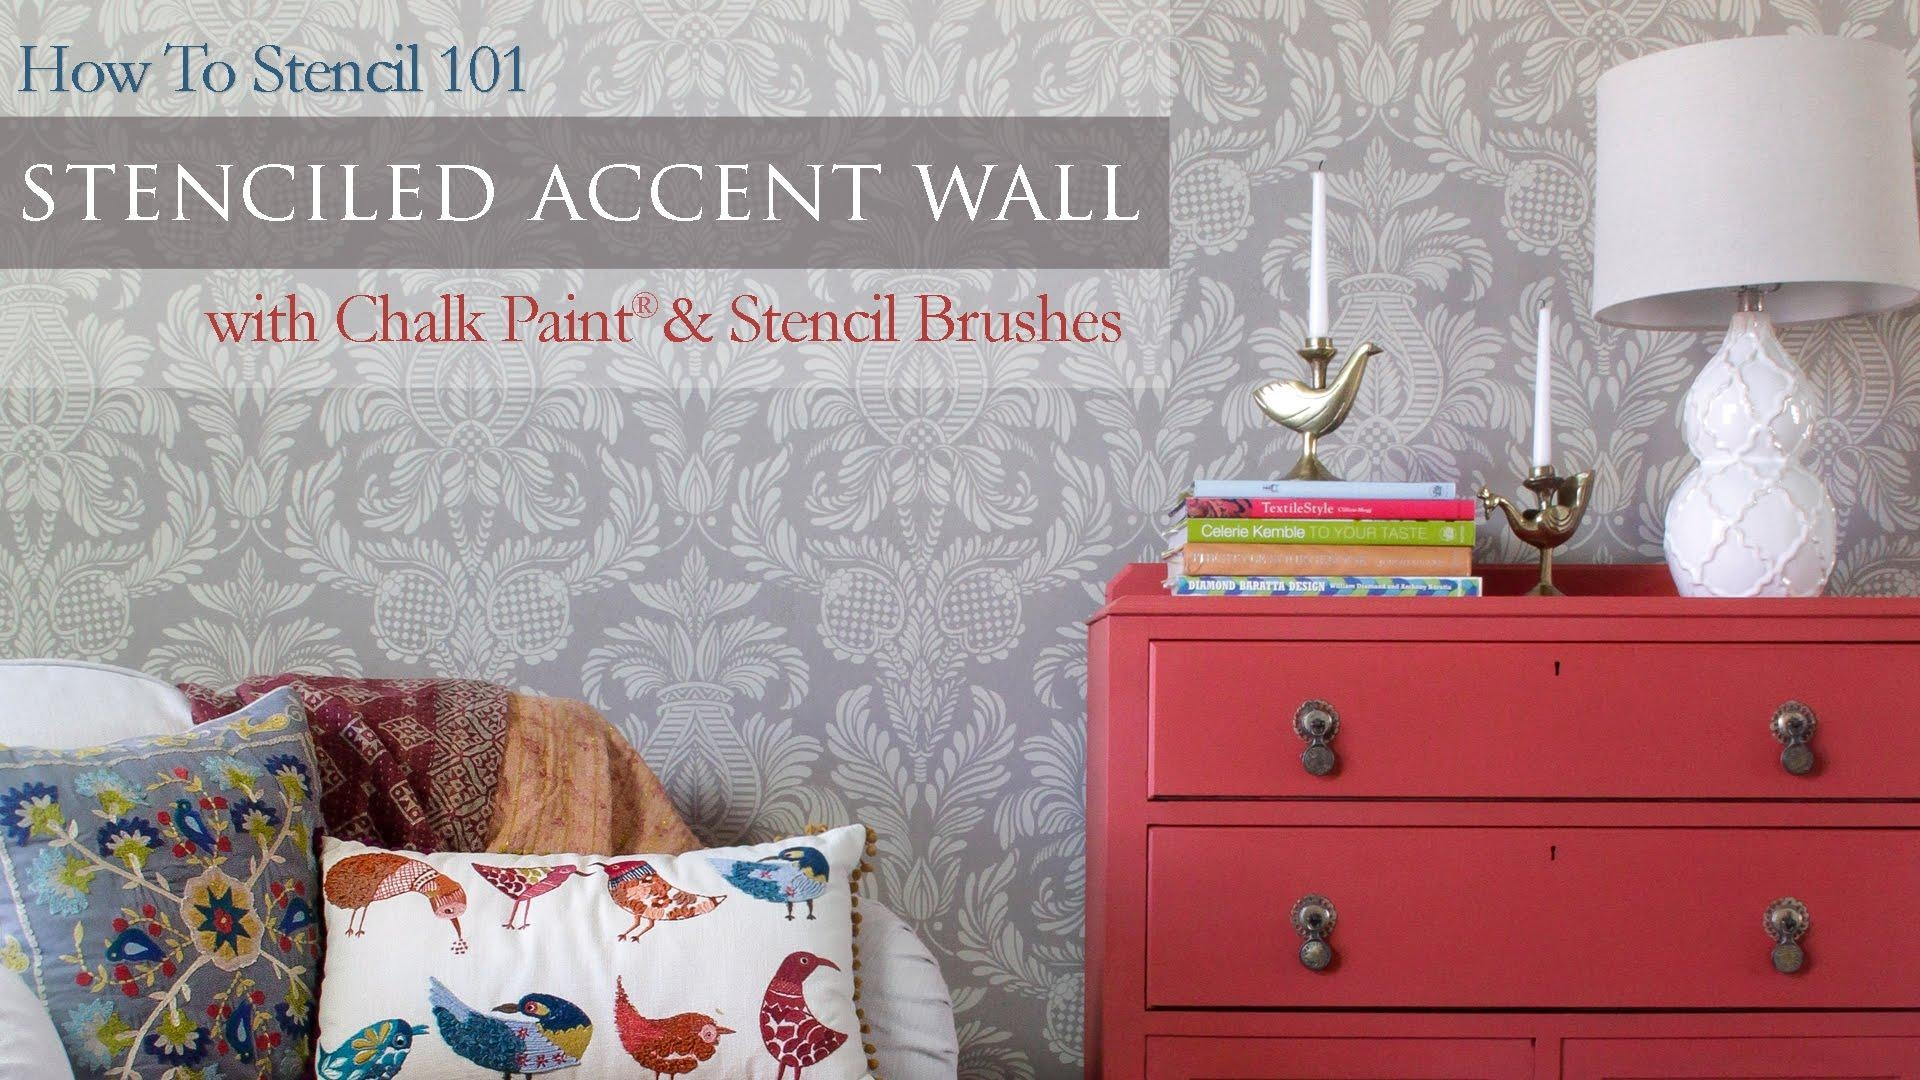 How To Stencil 101: Painting An Accent Wall With Wall Stencils And Intended For Space Stencils For Walls (View 2 of 20)